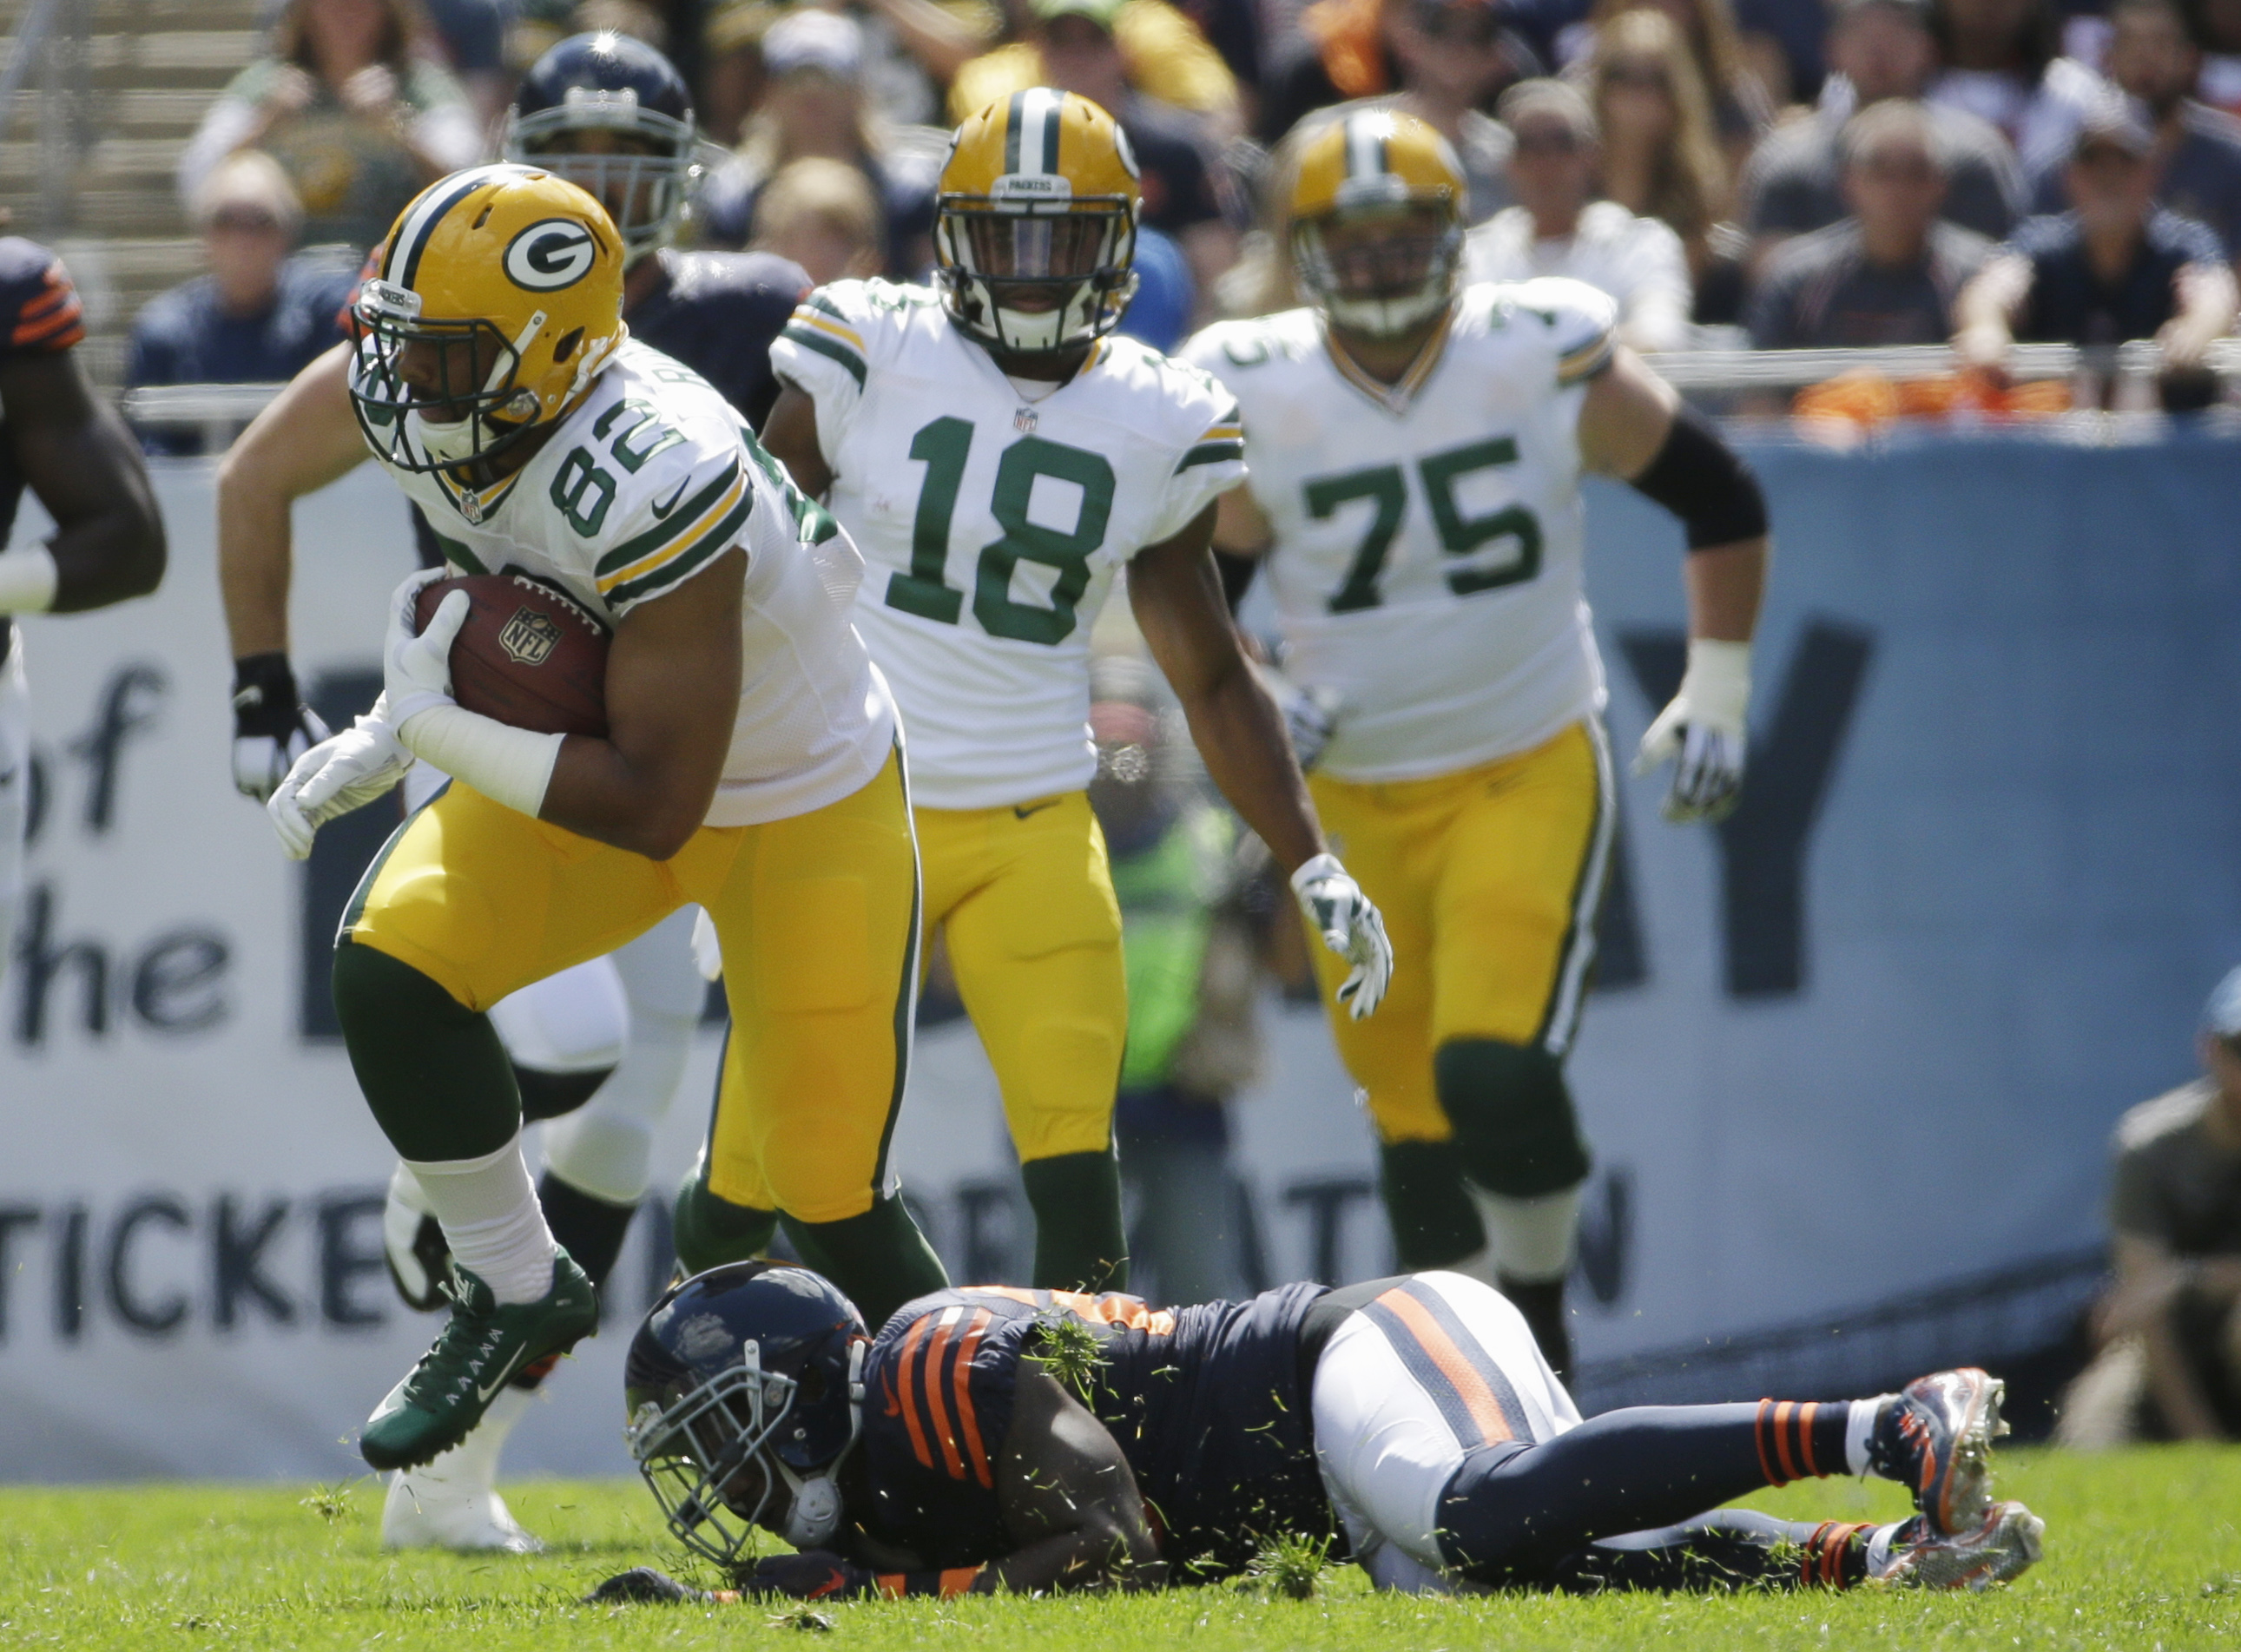 Green Bay Packers tight end Richard Rodgers (82) avoids a tackle by Chicago Bears safety Antrel Rolle (26) during the first half an NFL football game,  Sunday, Sept. 13, 2015, in Chicago. (AP Photo/Nam Y. Huh)